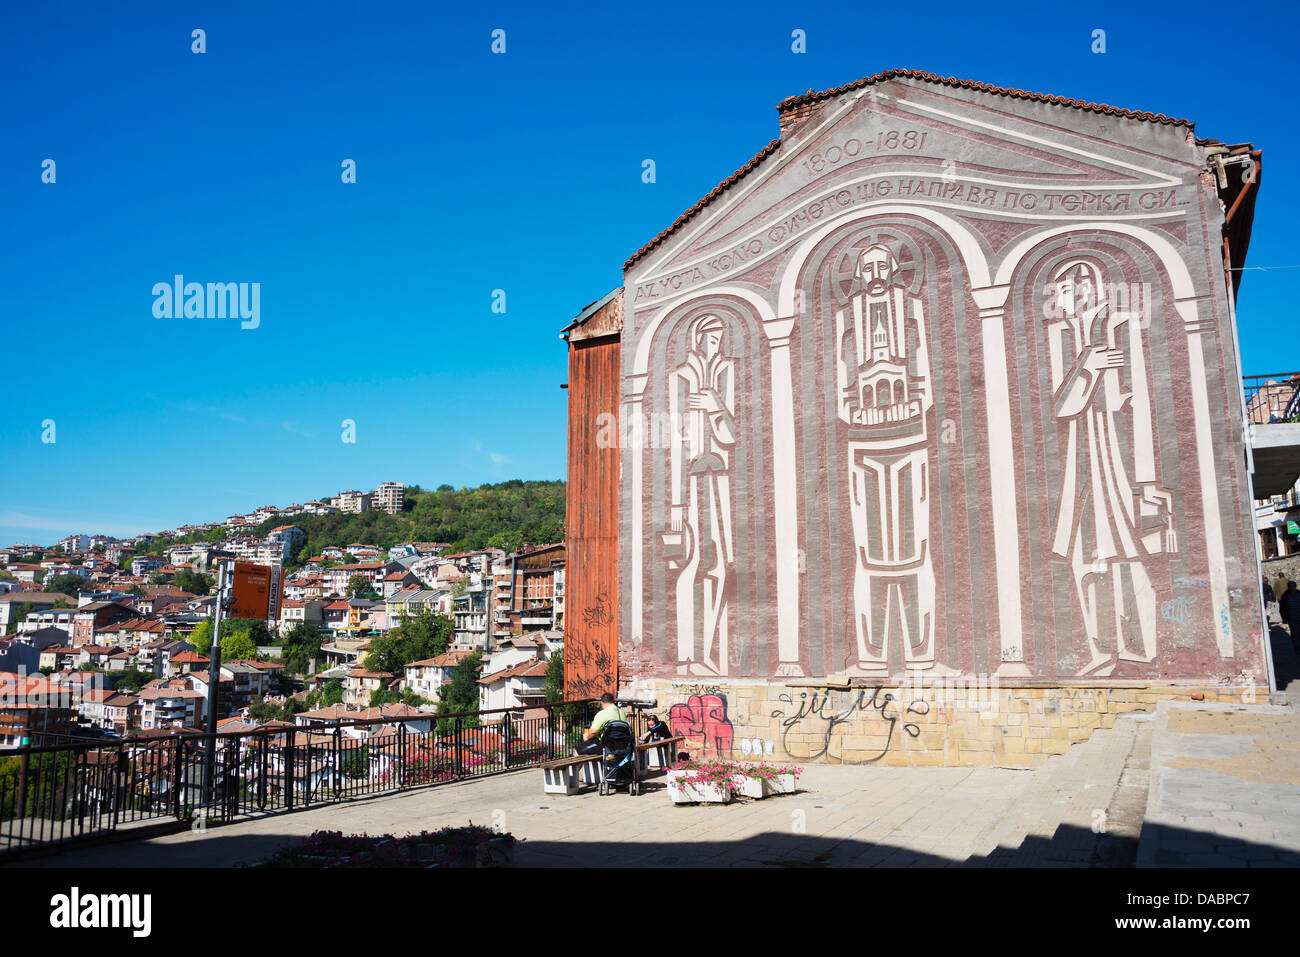 Wall mural, Veliko Tarnovo, Bulgaria, Europe Stock Photo